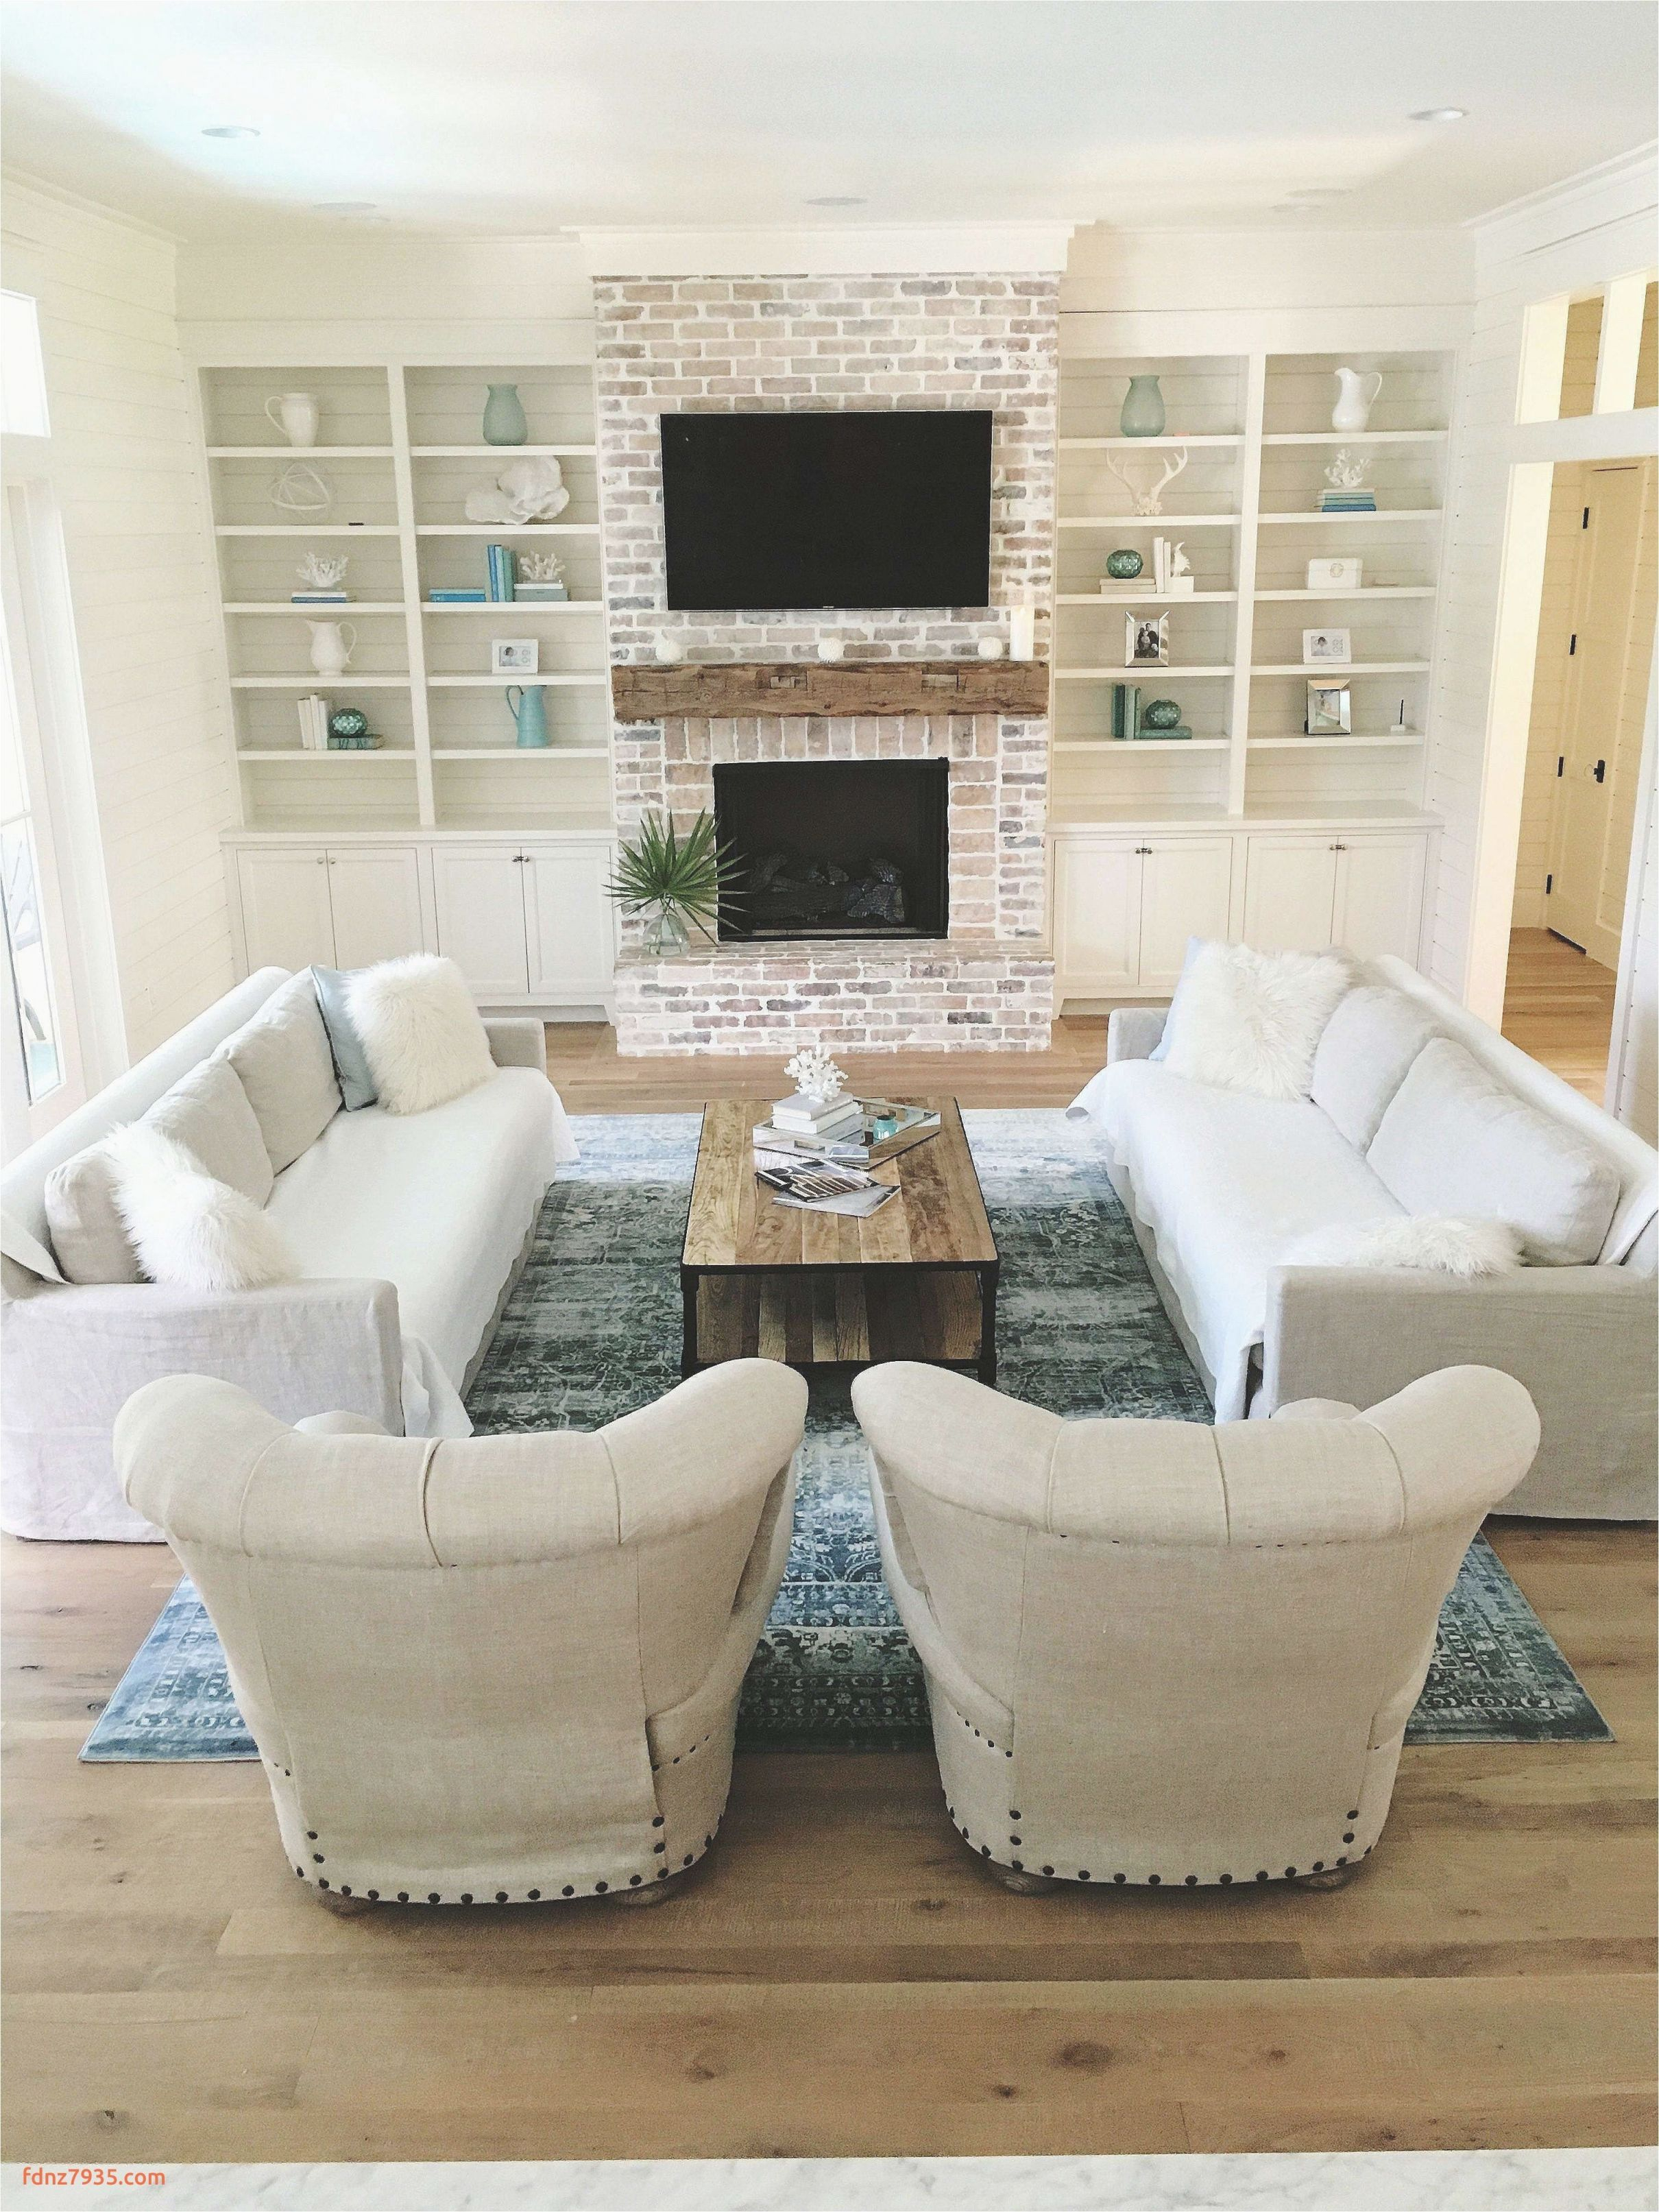 Dining Table In Living Room Luxury White Living Room within Luxury Cheap Modern Living Room Furniture